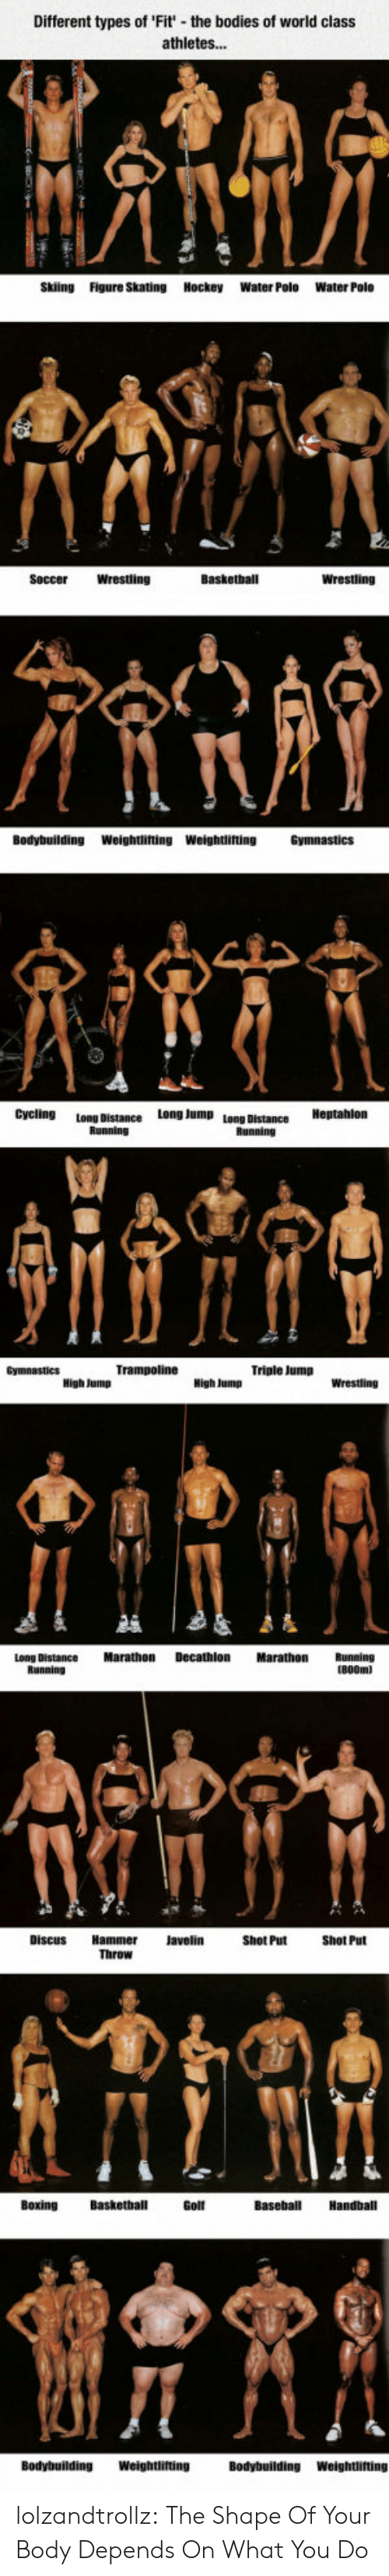 Different Types Of: Different types of 'Fit' the boo  of world class  athletes...  Skiing  Figure Skating Hockey  Water Polo  Water Polo  Basketball  Wrestling  Wrestling  Soccer  Bodybuilding  Weightlifting Weightlifting  Cycling  Long Jump  Long Distance  Bunninn  Triple Jump  Decathlon  Marathon  Marathon  Long Distance  Shot Put  Throw  Basketball  Baseball  Handball  Bοxing  Golf  Weightlifting  Bodybuilding  Bodybuilding  Weightlifting lolzandtrollz:  The Shape Of Your Body Depends On What You Do